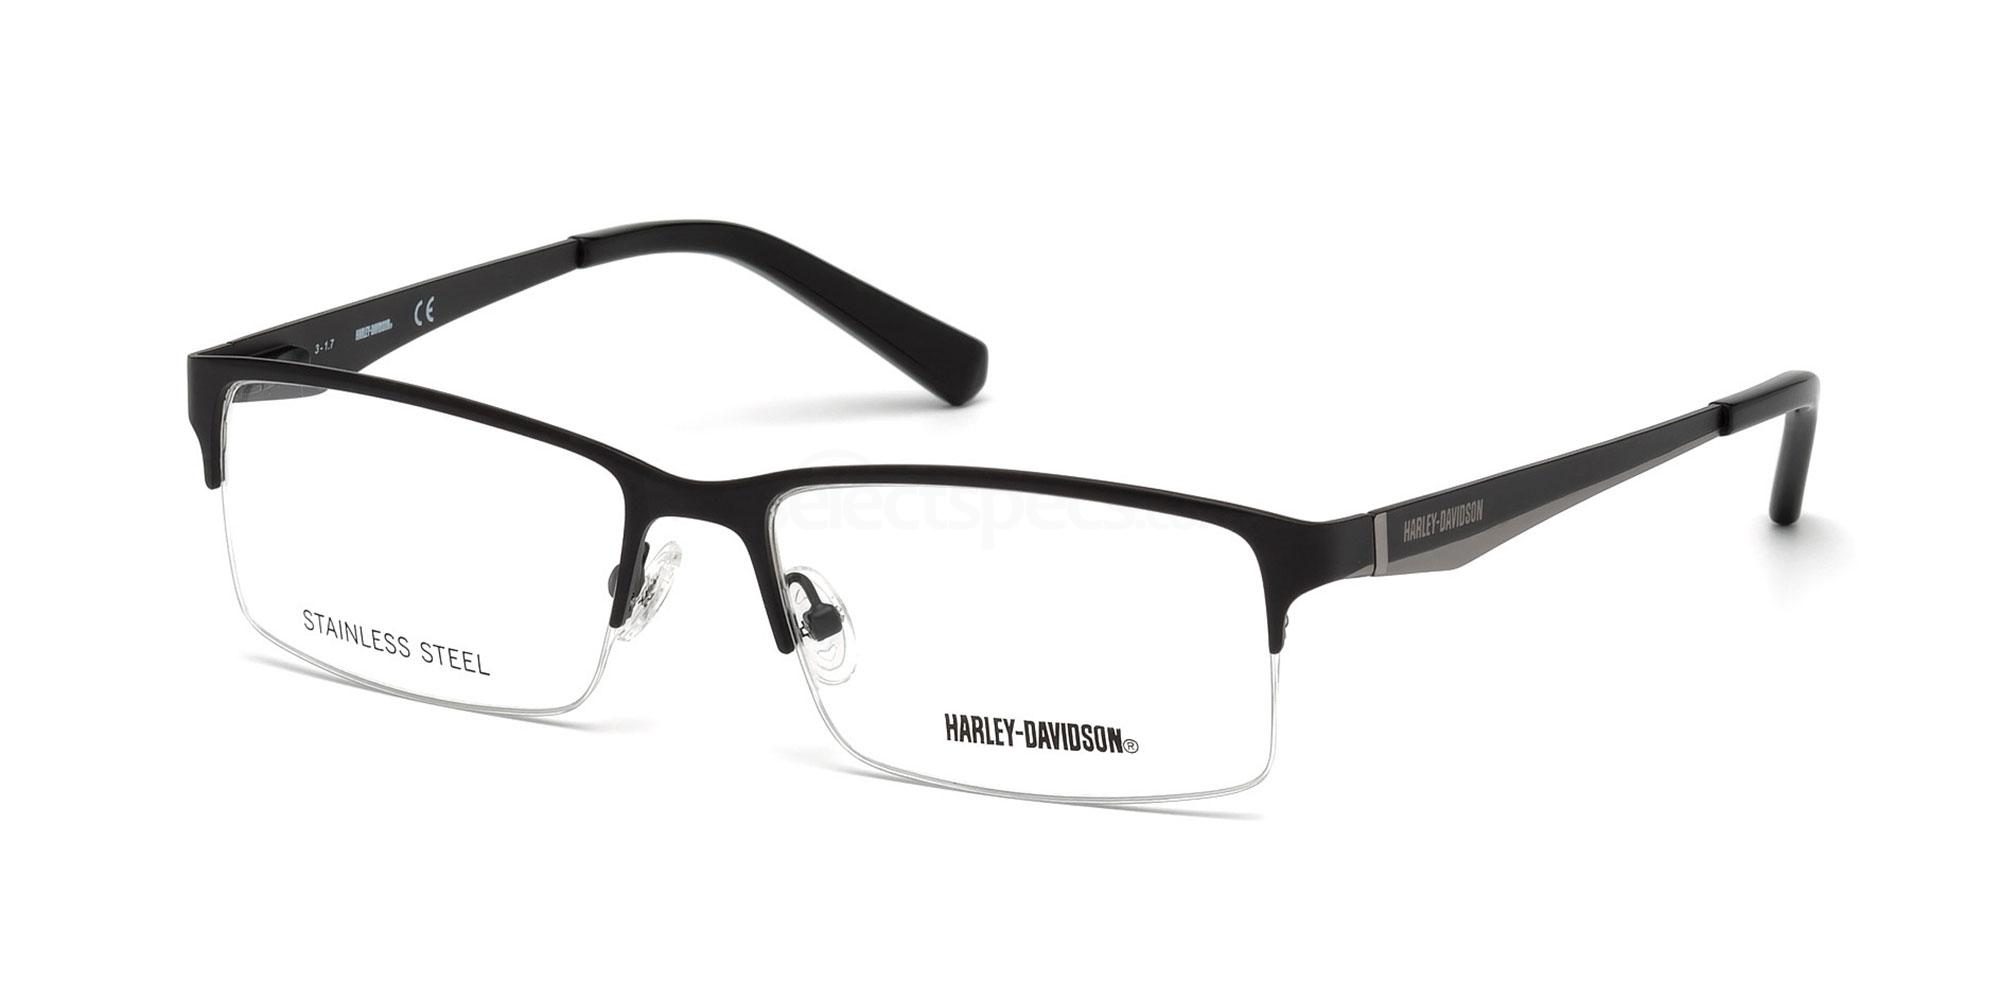 001 HD0766 Glasses, Harley Davidson